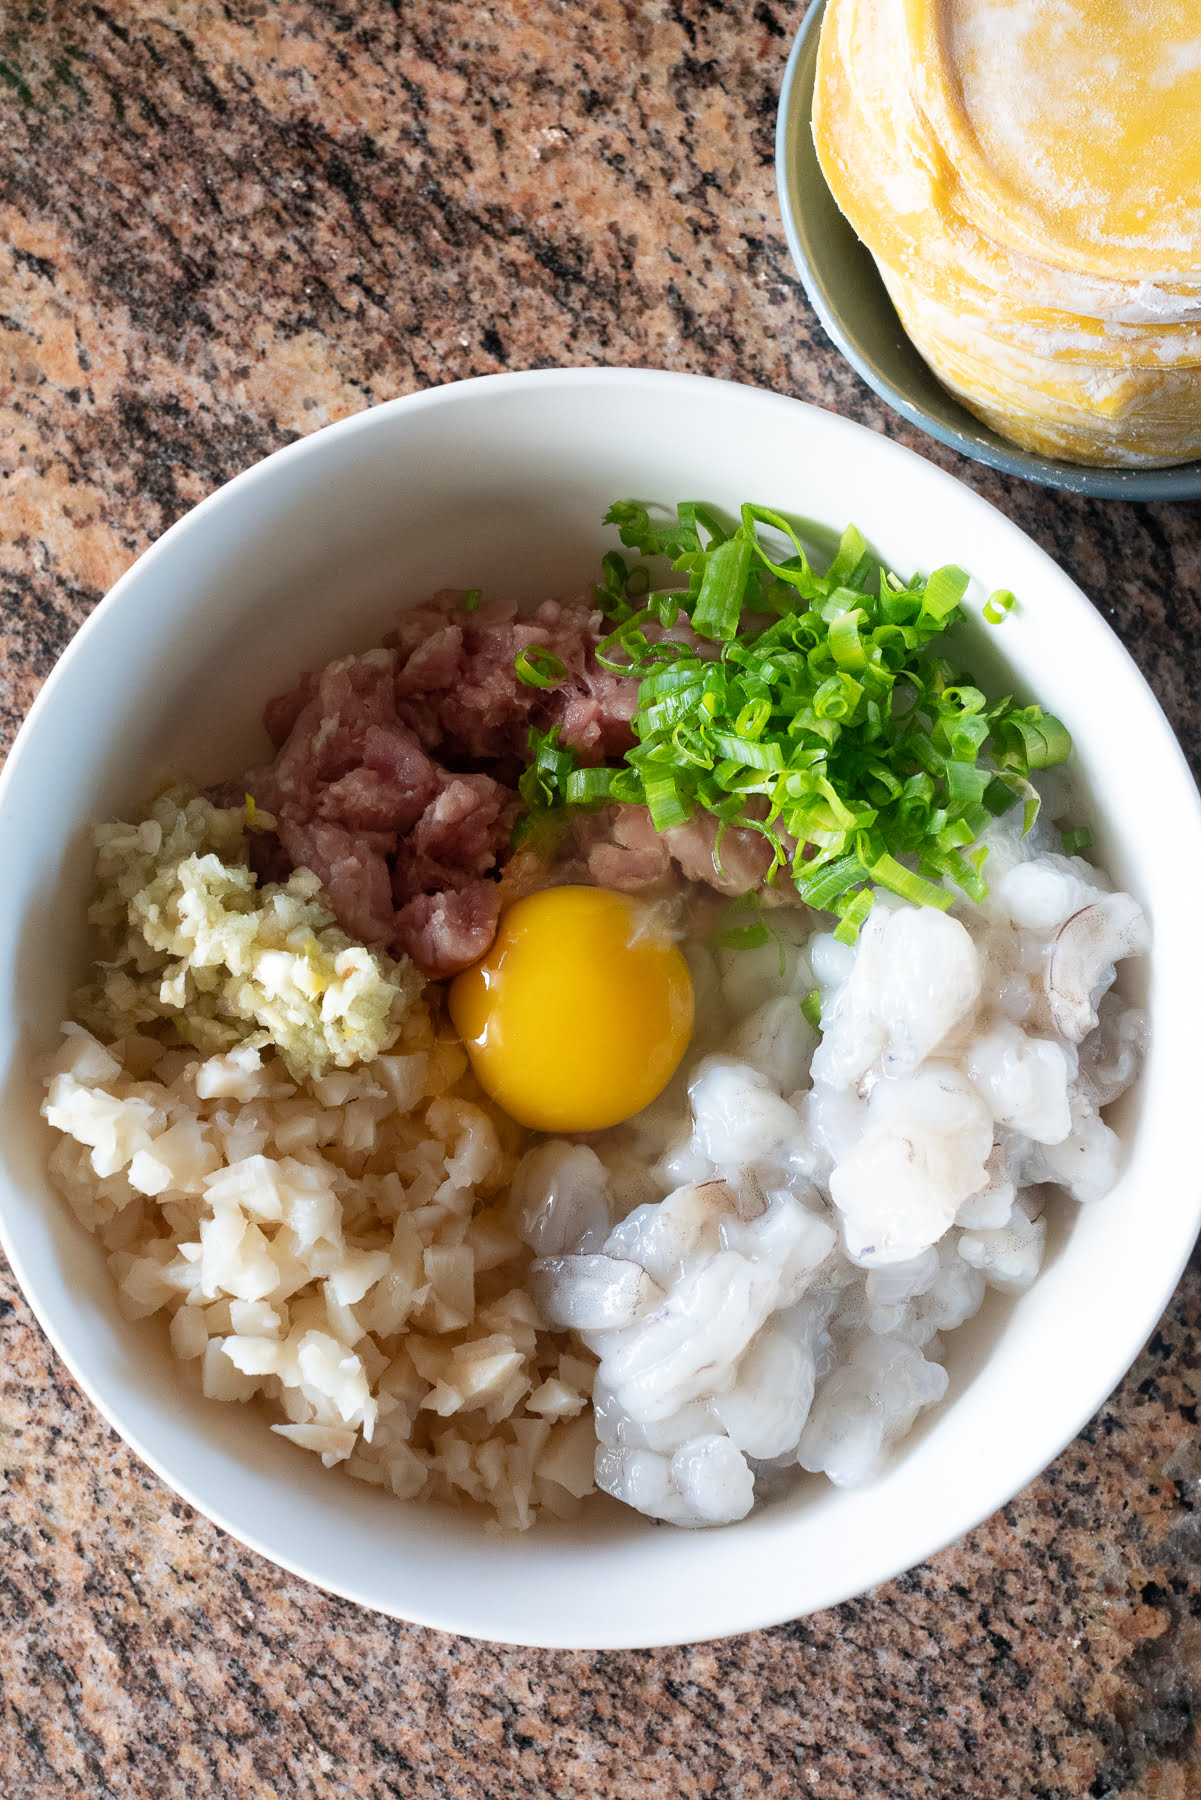 Mixing together ingredients for Pork Hash (ground pork, shrimp, egg, water chestnuts, green onions, garlic, cornstarch, soy sauce, oyster sauce, sesame oil, white pepper, and round dumpling skins).